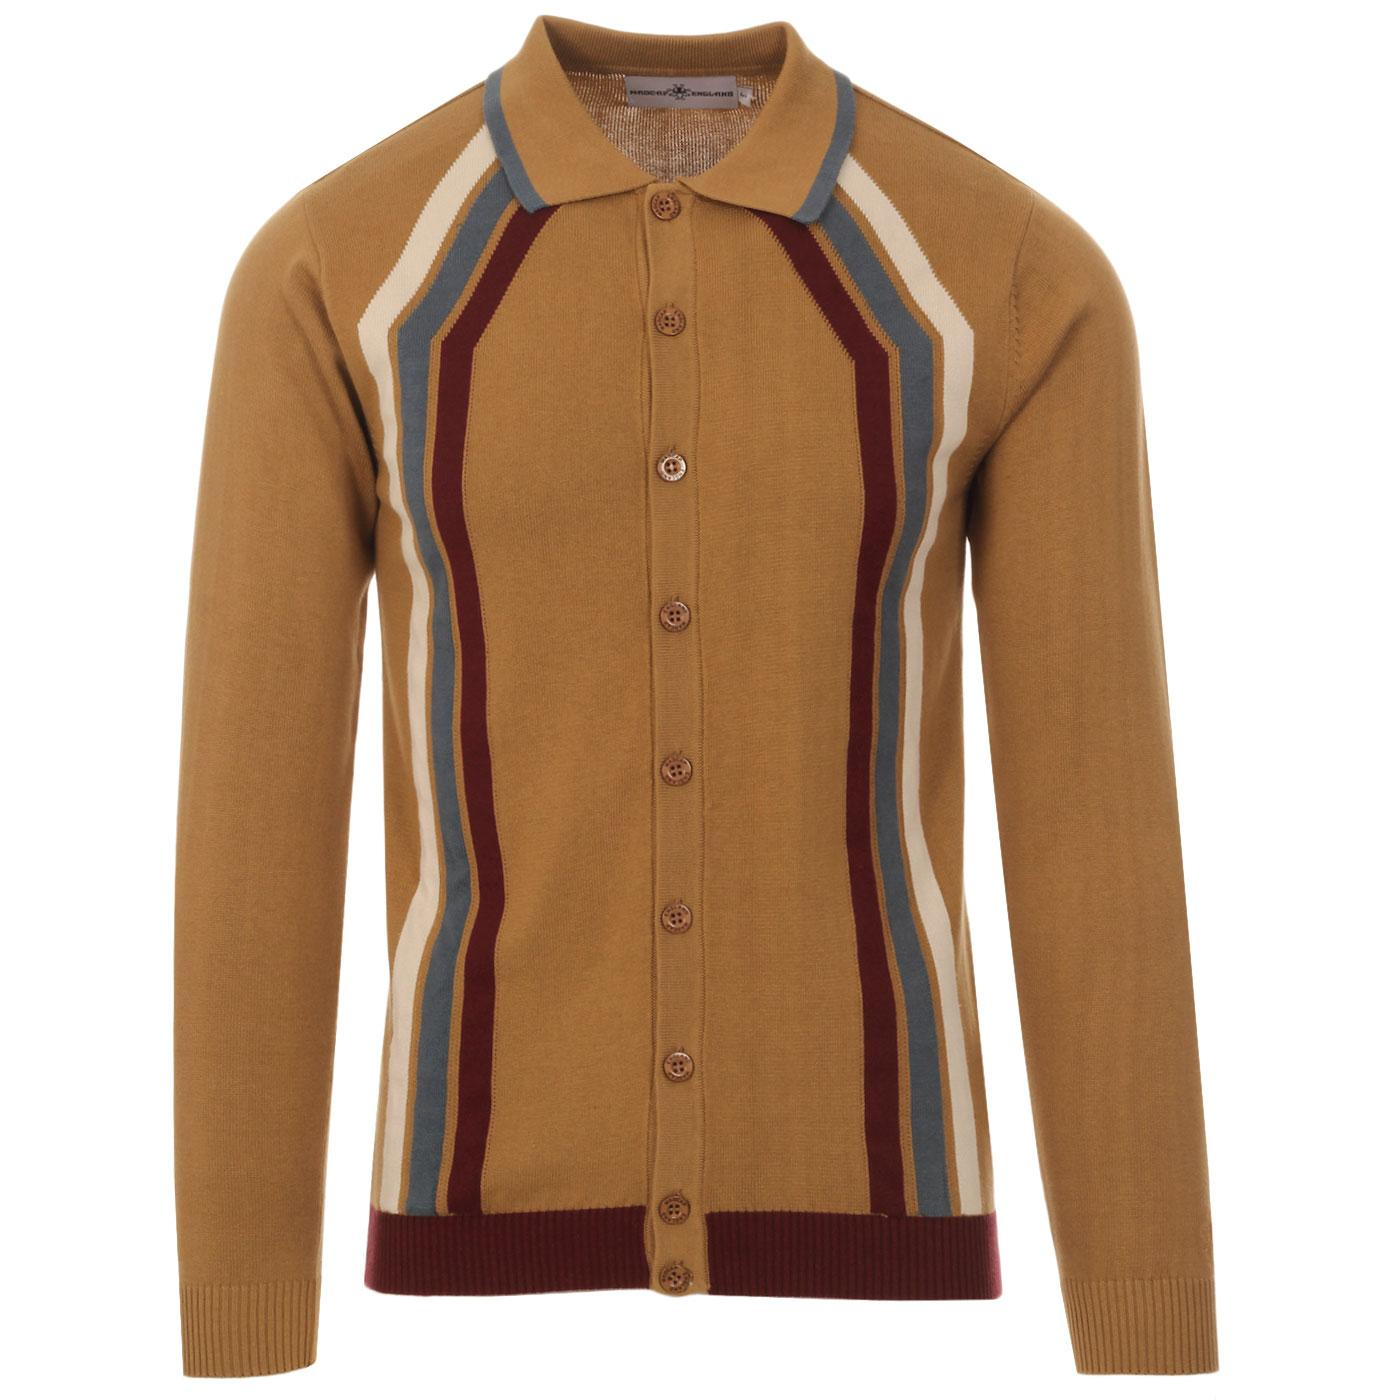 Madcap England Blast men's 60s mod contoured stripe knitted polo cardigan in fall leaf